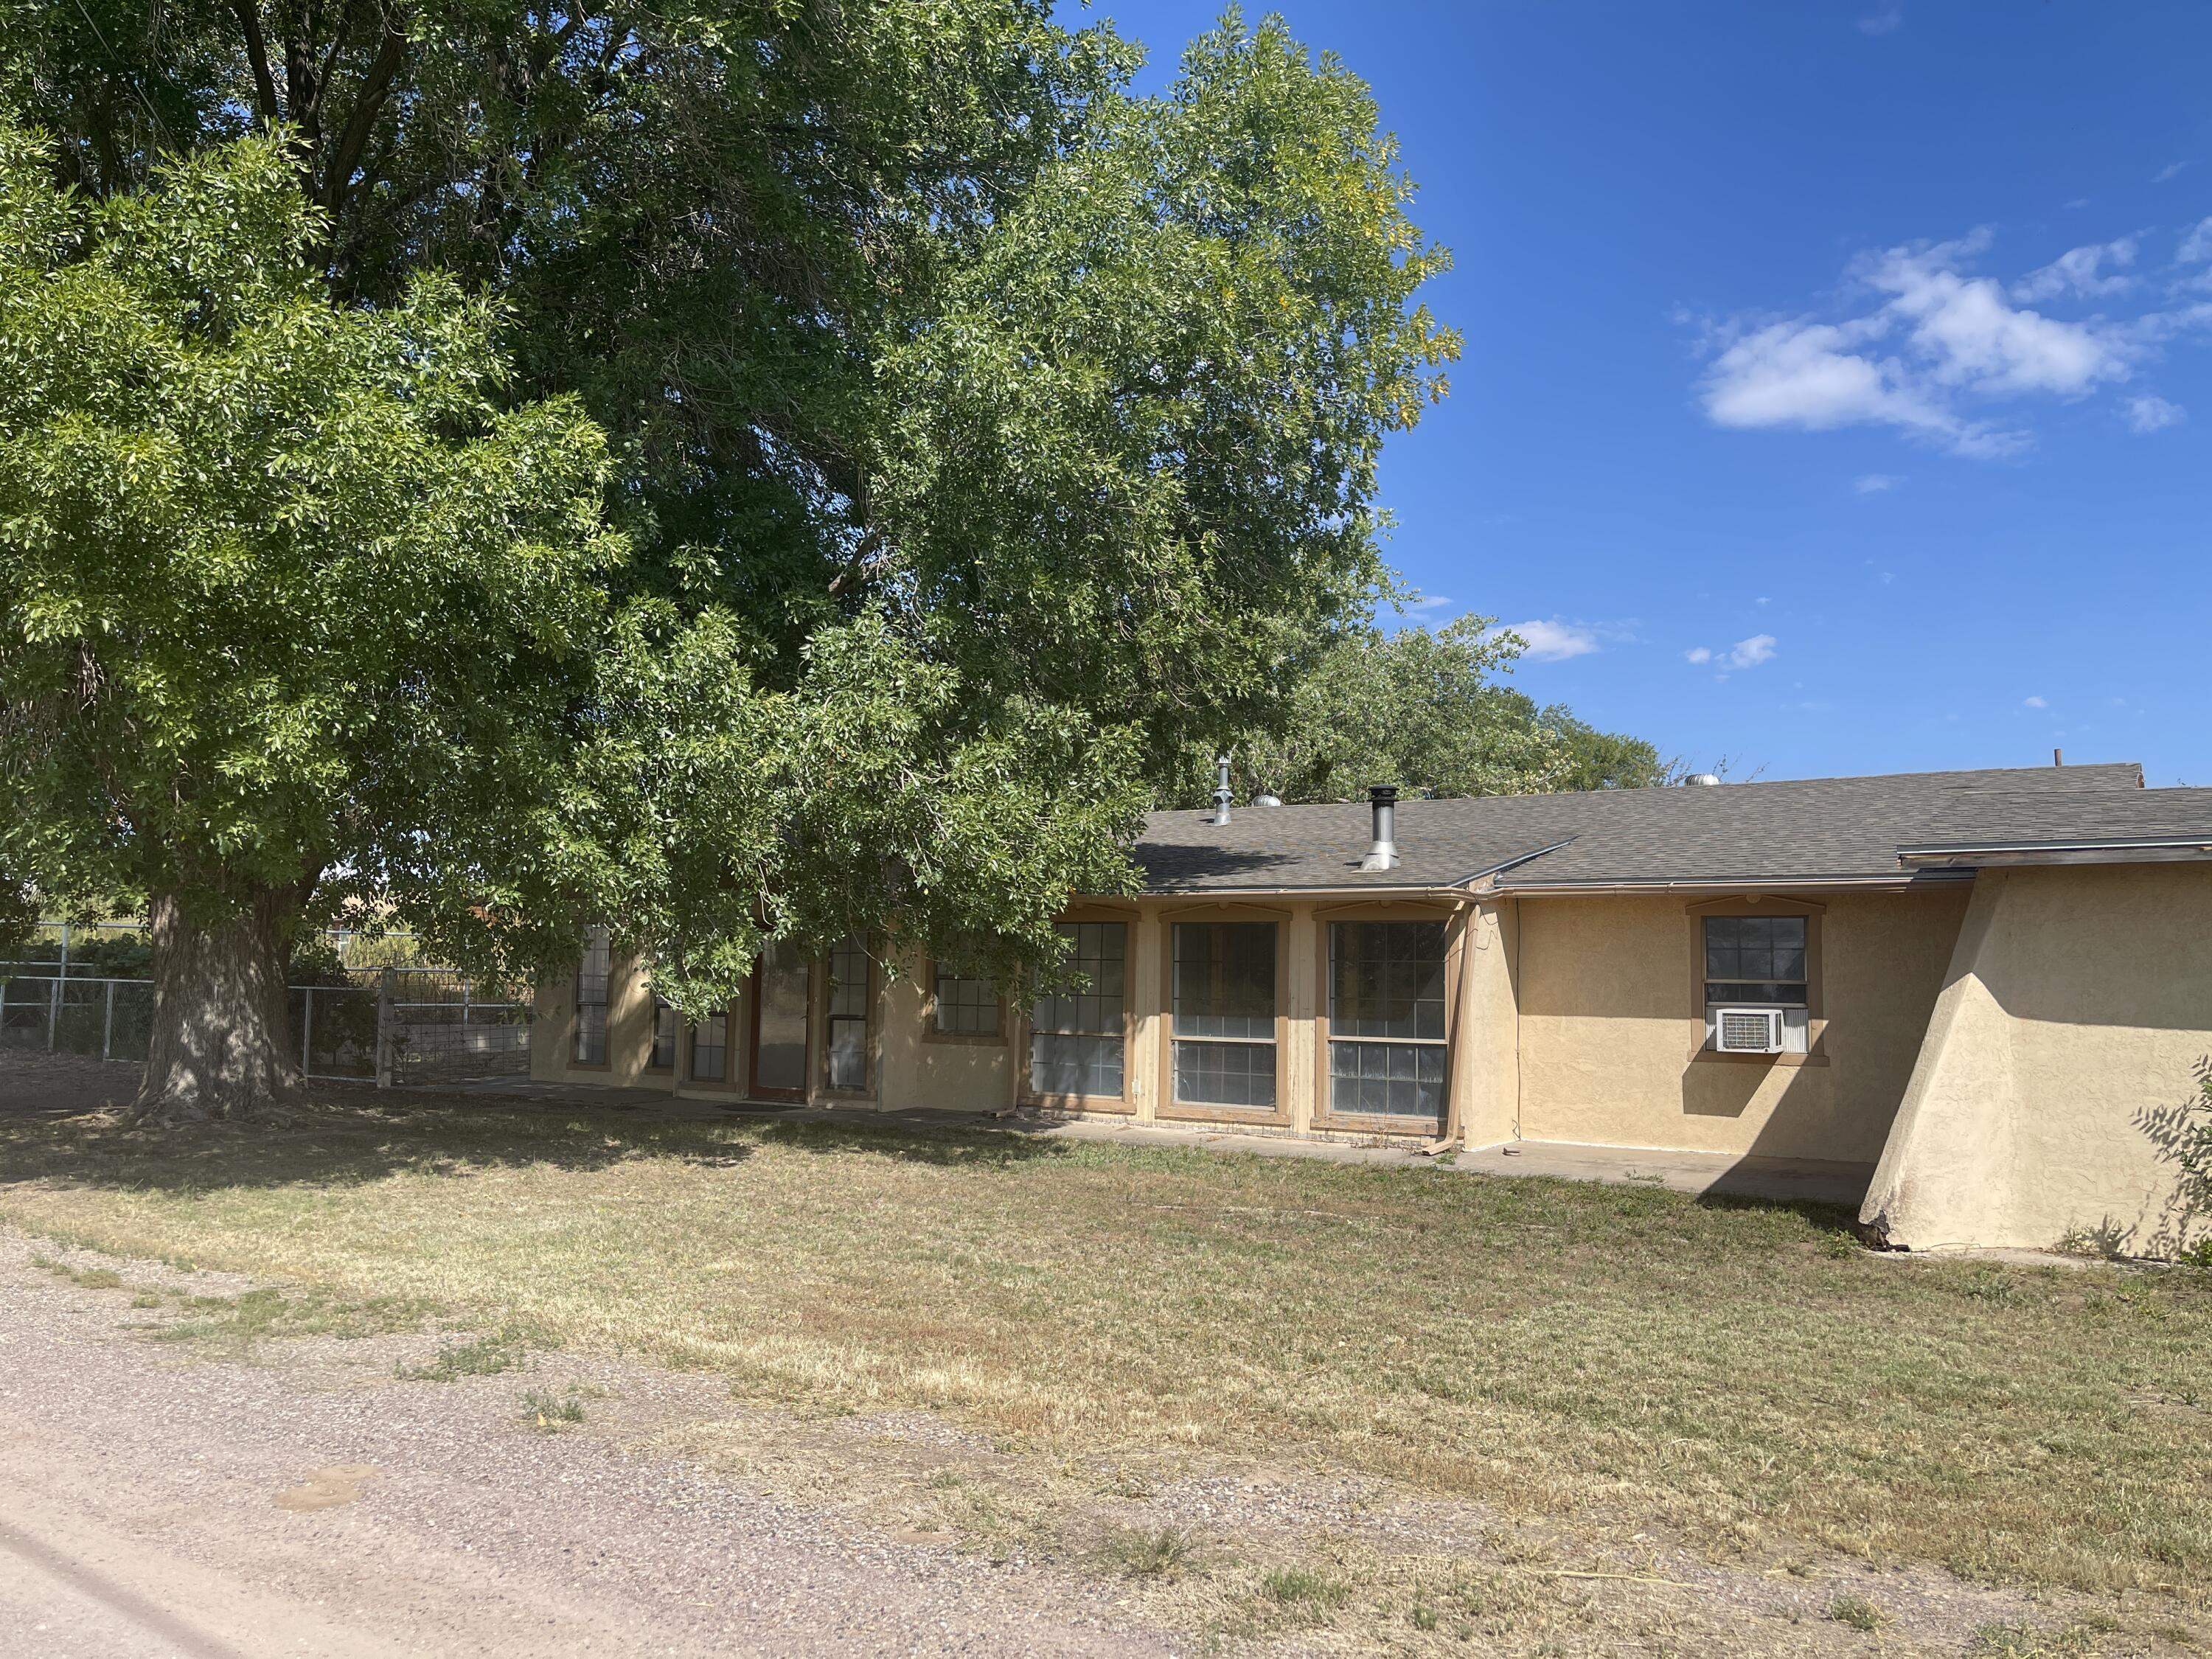 This property has it all, it sits on 3.2 acres of irrigated land.  Home is a three bedroom two bath with over 2100 sq. ft.  with a large master bedroom, open dining room and Livingroom area. The auxiliary building is 1500 sq. ft. with radiant floor heating, bathroom and reception area, and an oversized, attached garage.  The building is being used as a Kennel to board small animals.  This property has many opportunities and must-see.